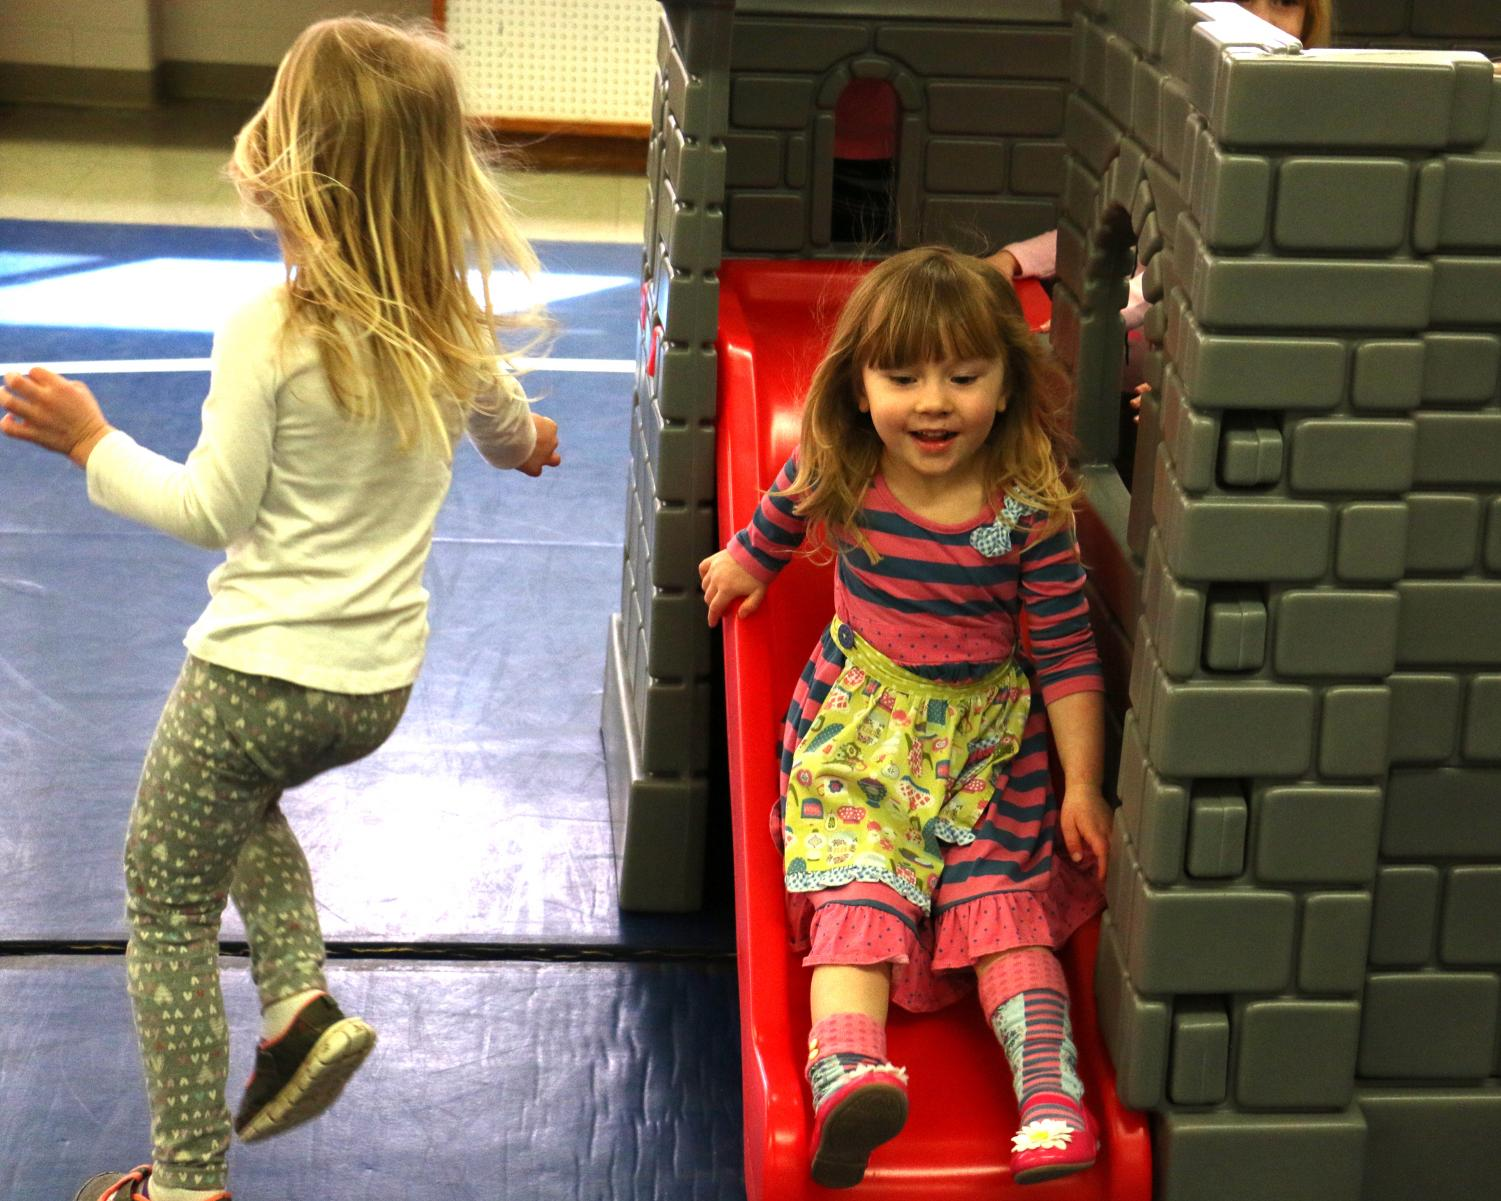 Two children enrolled in WSC's Kiddie College preschool enjoy the new early childhood indoor activity area which opened on March 26 as part of the Nature Explore program.